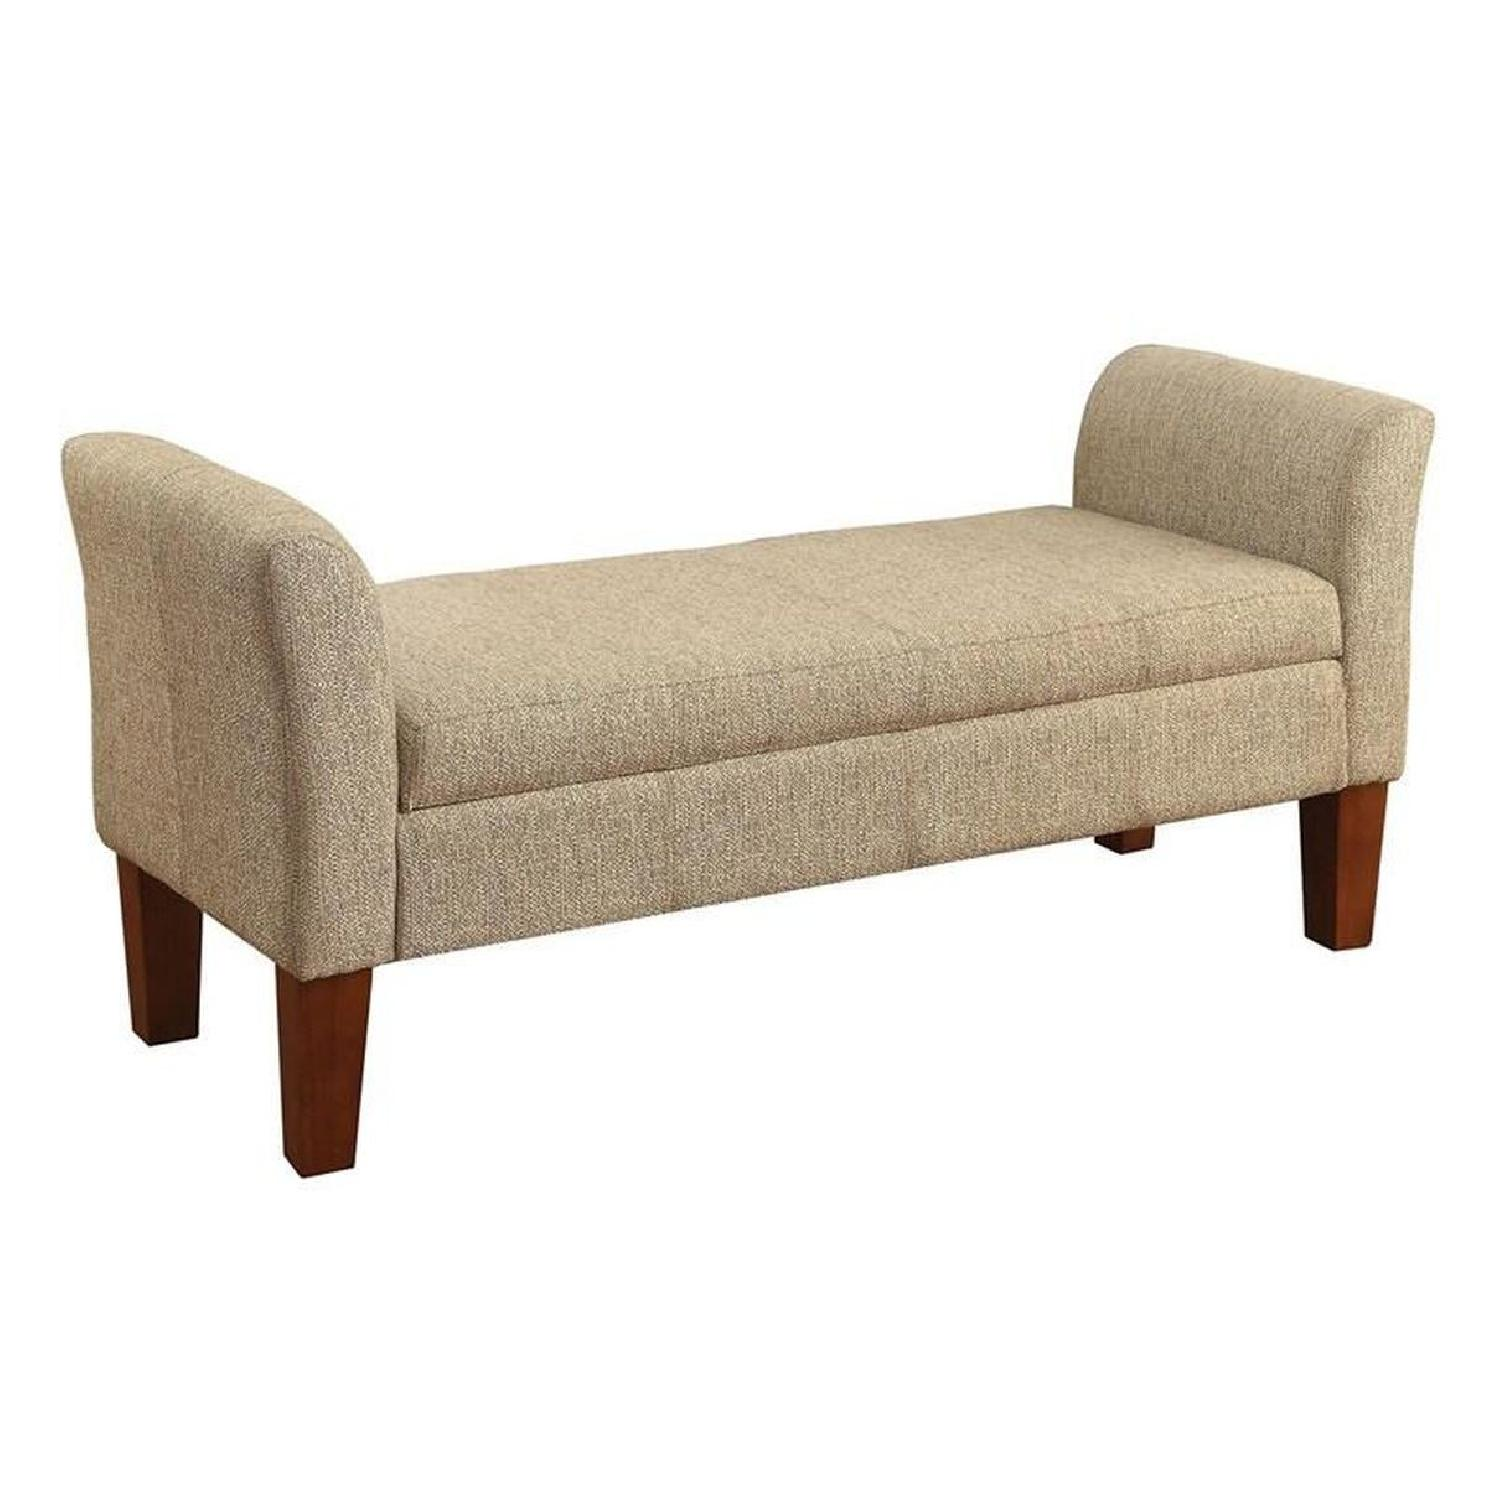 Storage Bench Upholstered In Tan Woven Fabric - image-0